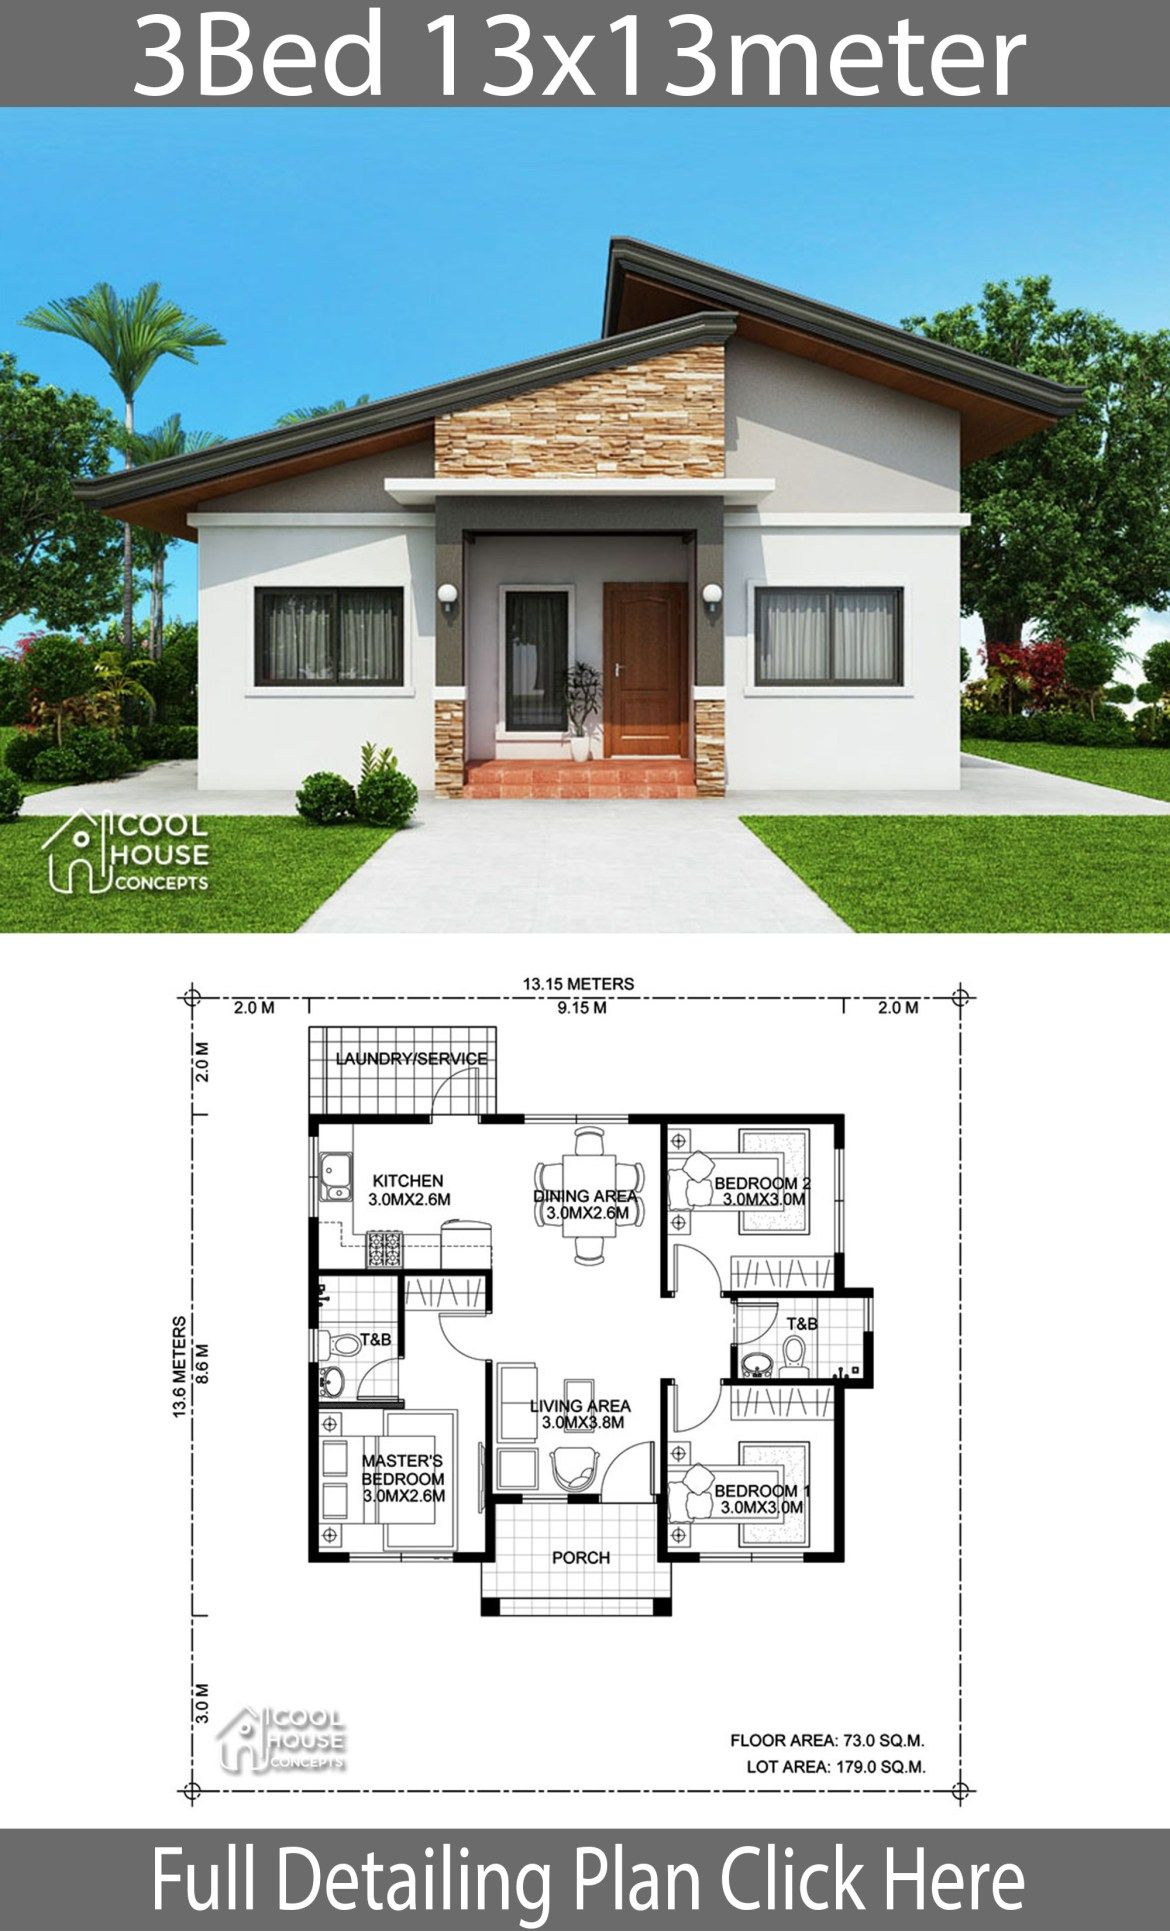 Home Design Plan 13x13m With 3 Bedrooms Home Planssearch Modern Bungalow House Modern Bungalow House Design Bungalow House Design